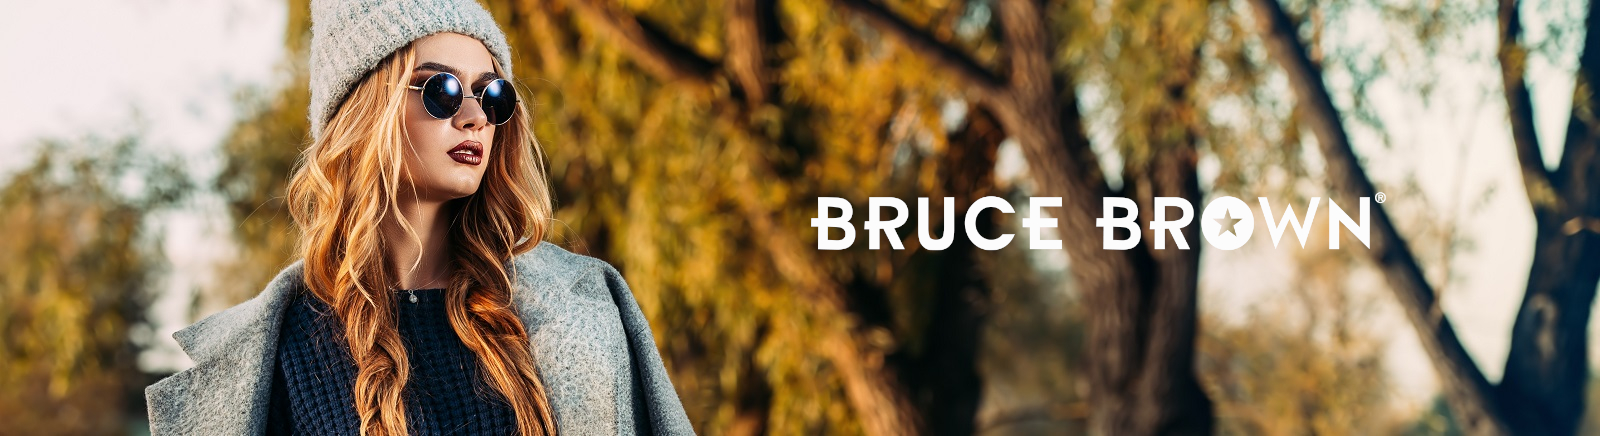 Gisy: Bruce Brown Winterstiefel online shoppen